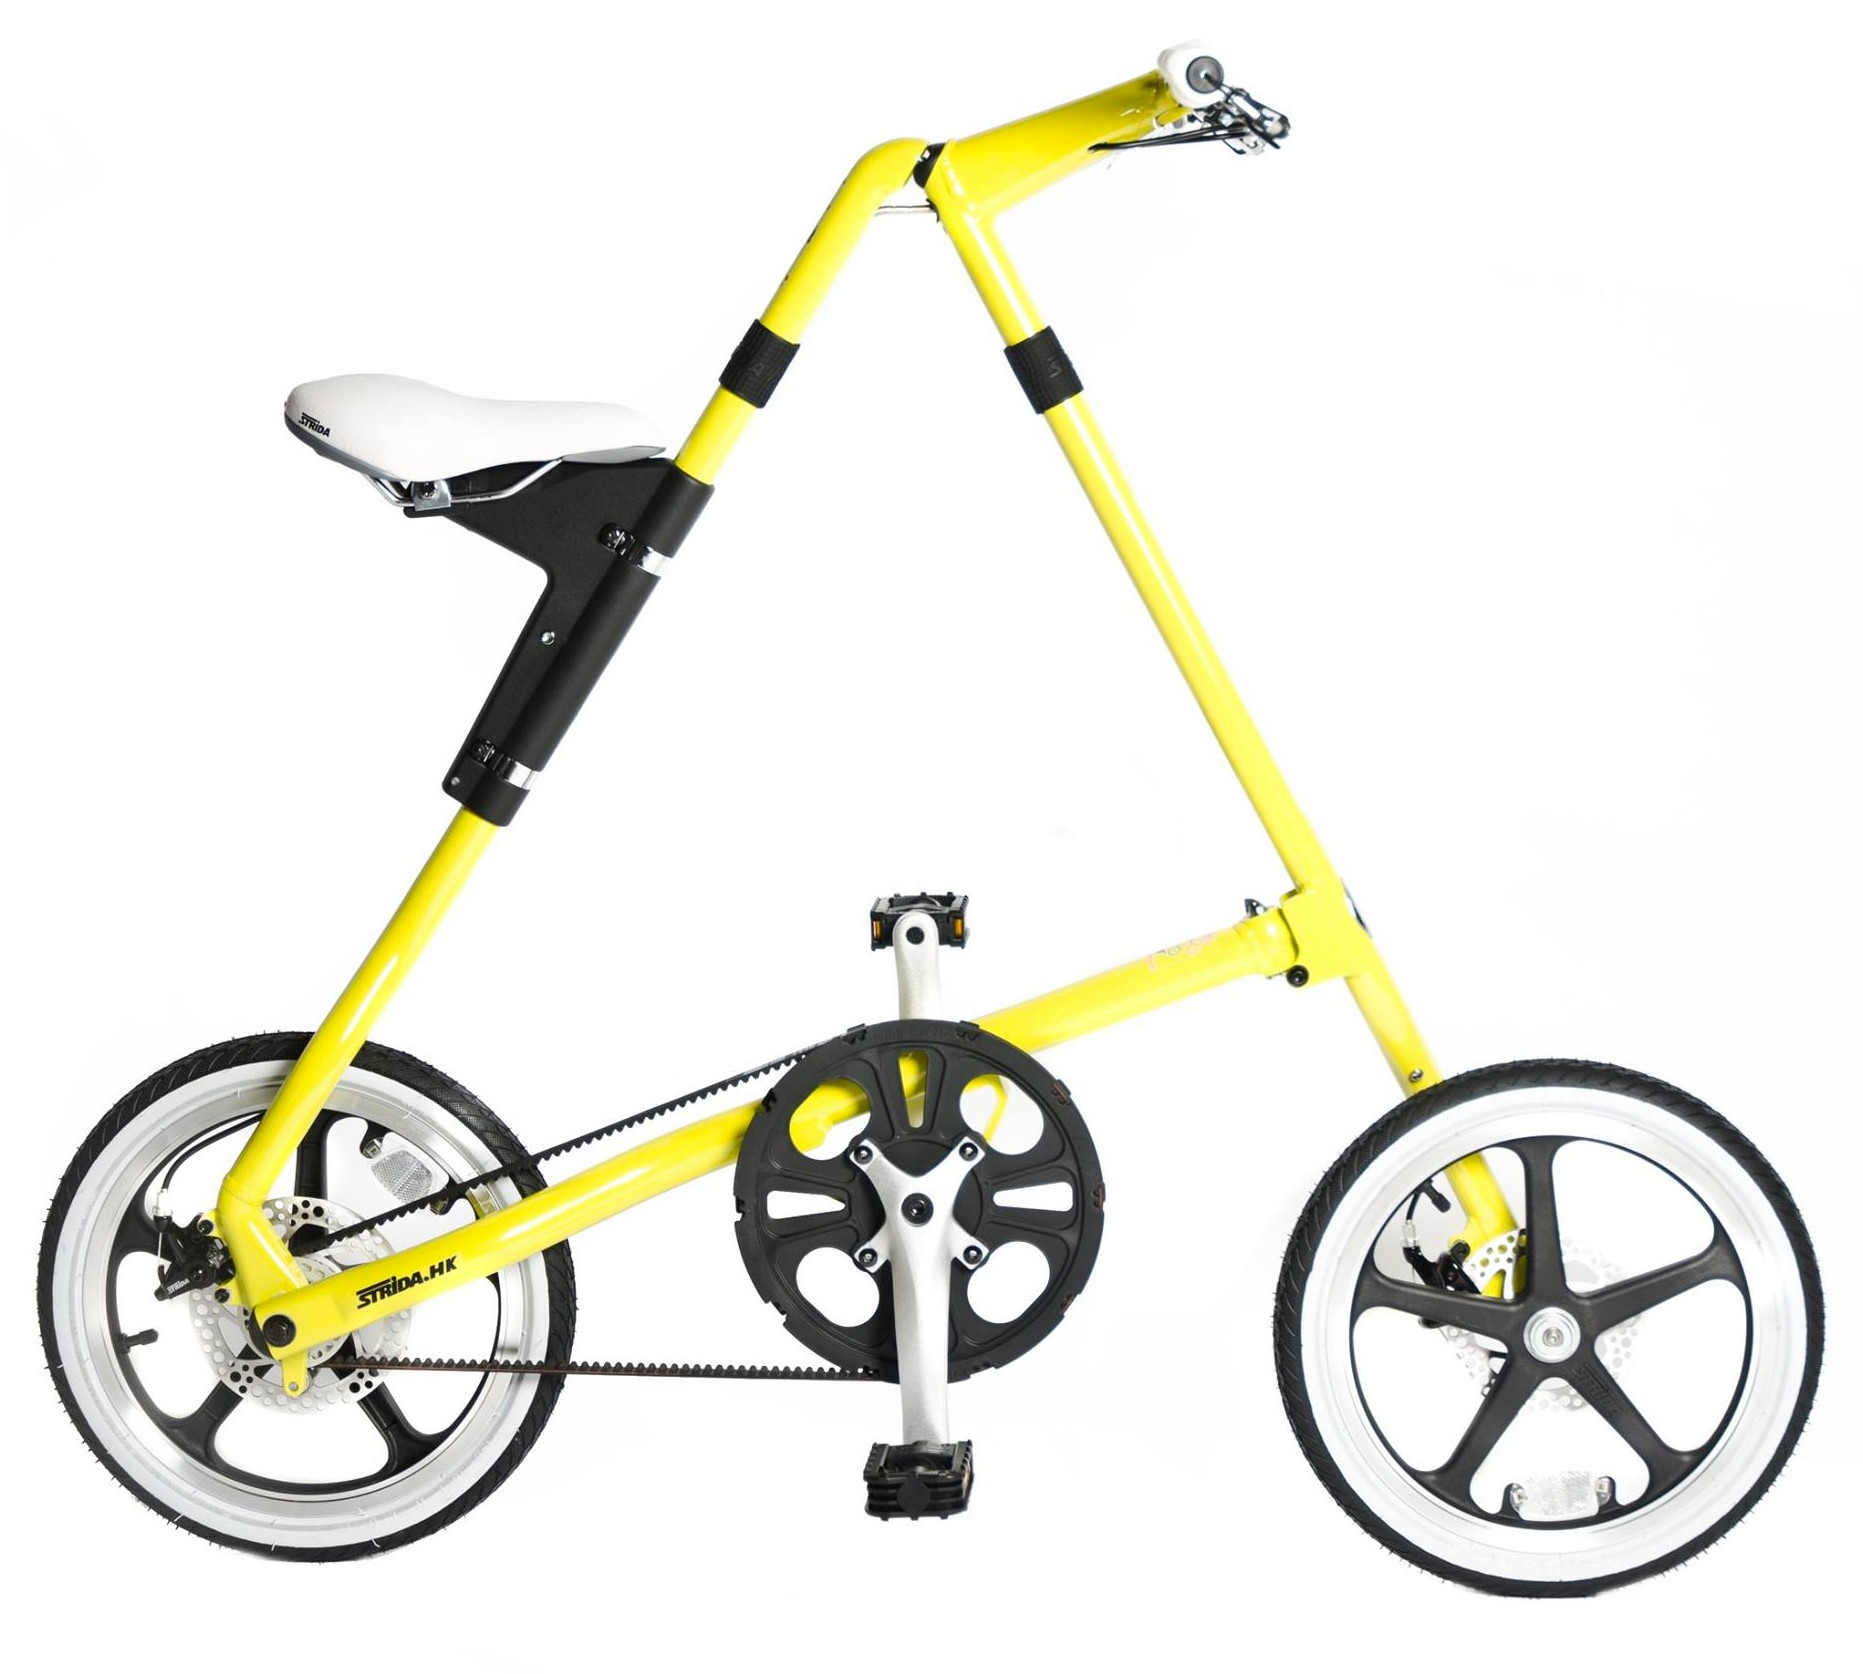 STRiDA LT Mustard strida lt STRiDA LT 12646856 931791790248232 1648294883958325263 o e1457853941306